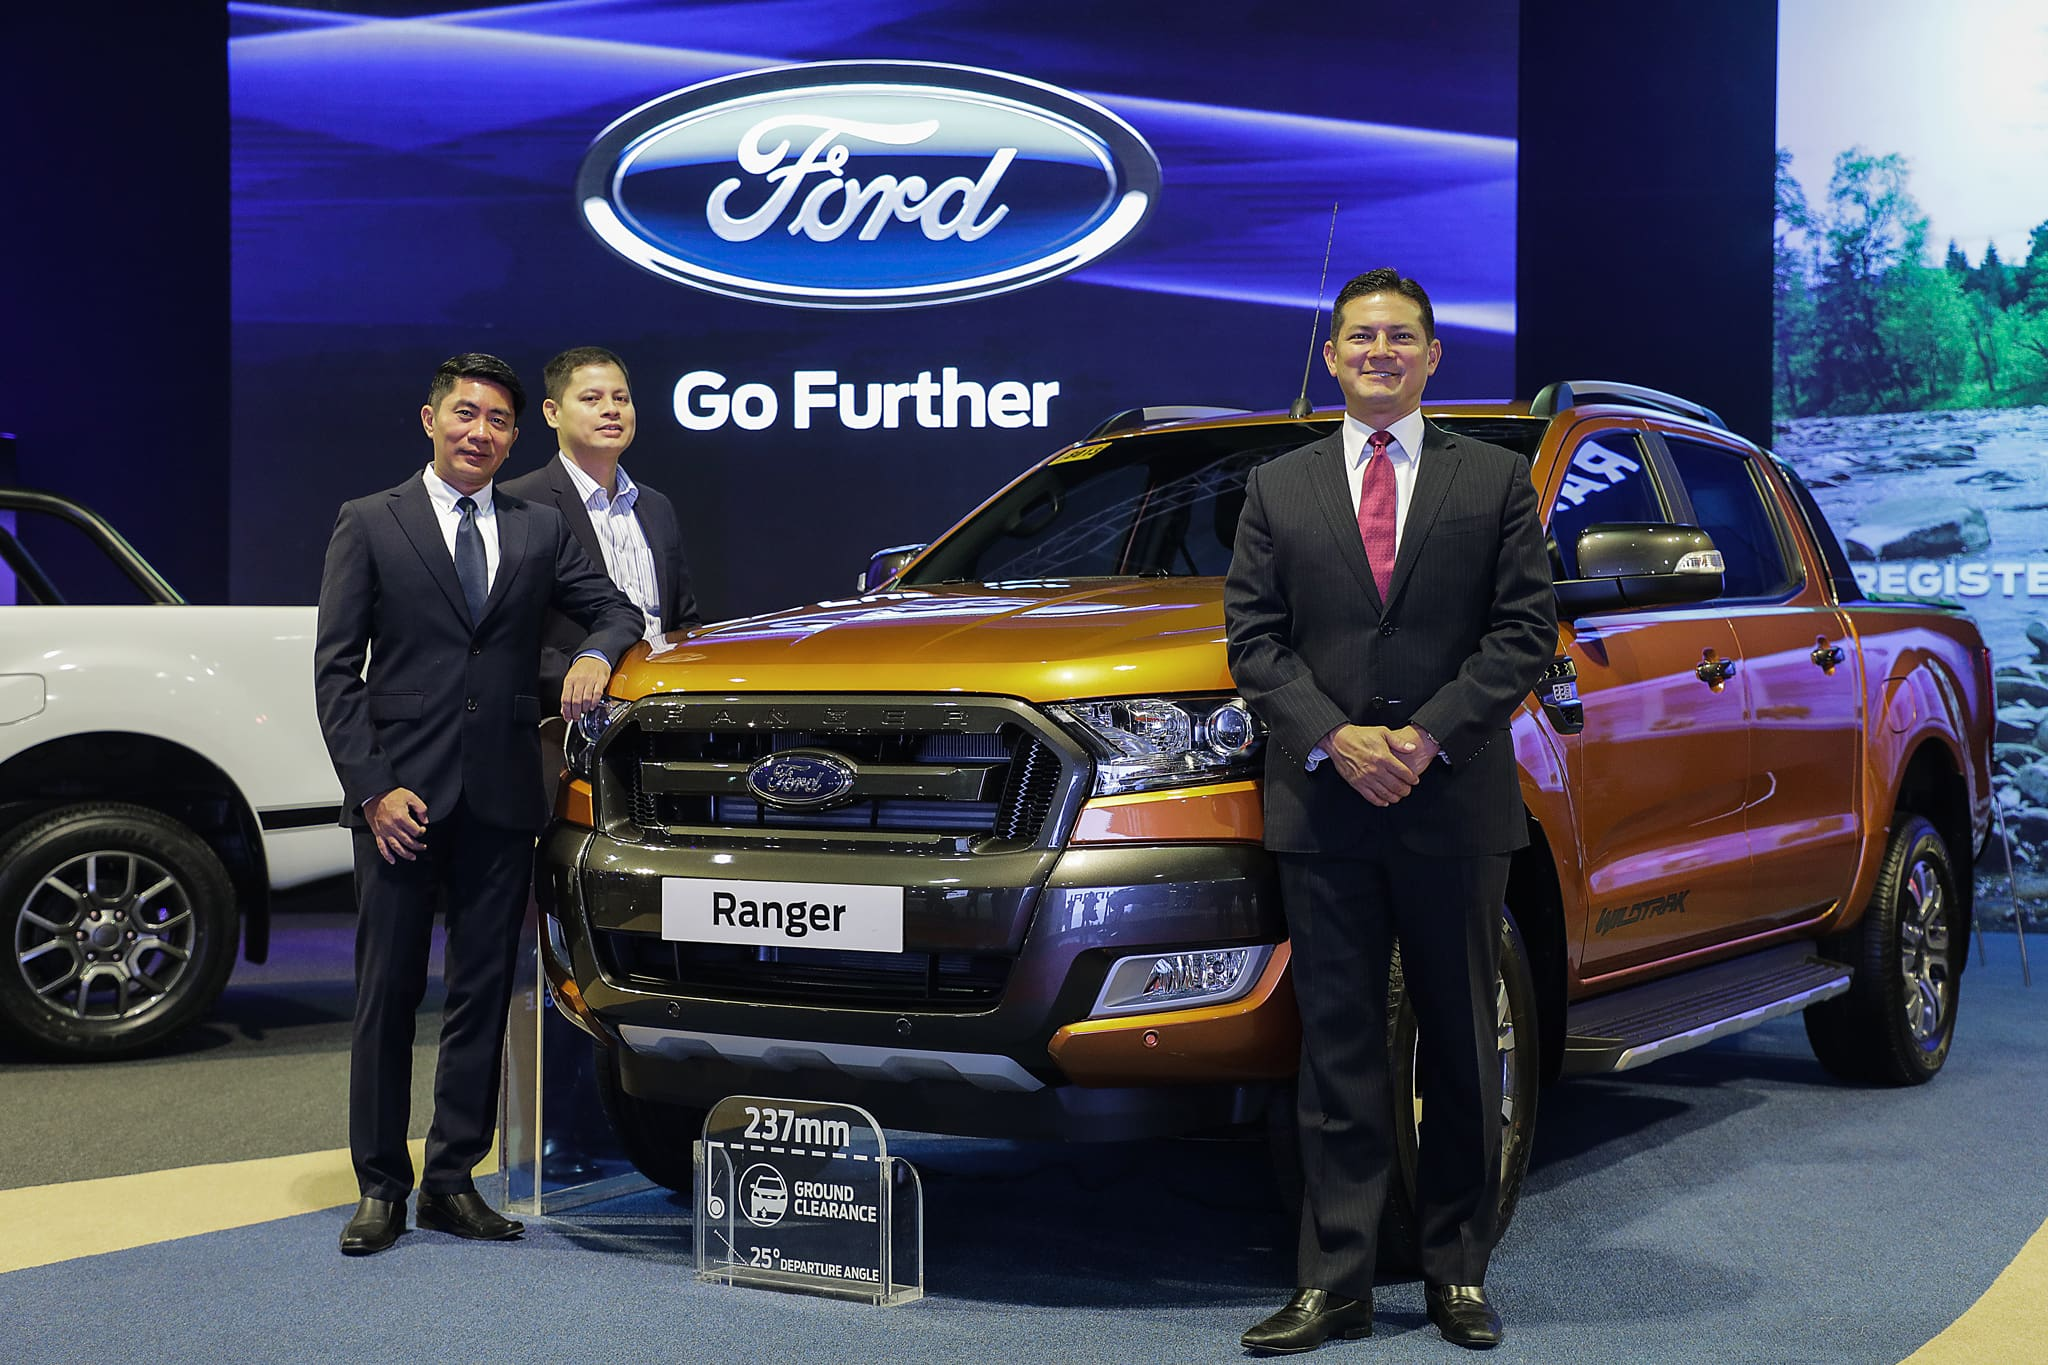 MIAS 2017: Ford PH to bring Ford Island Conquest test drive experience nationwide